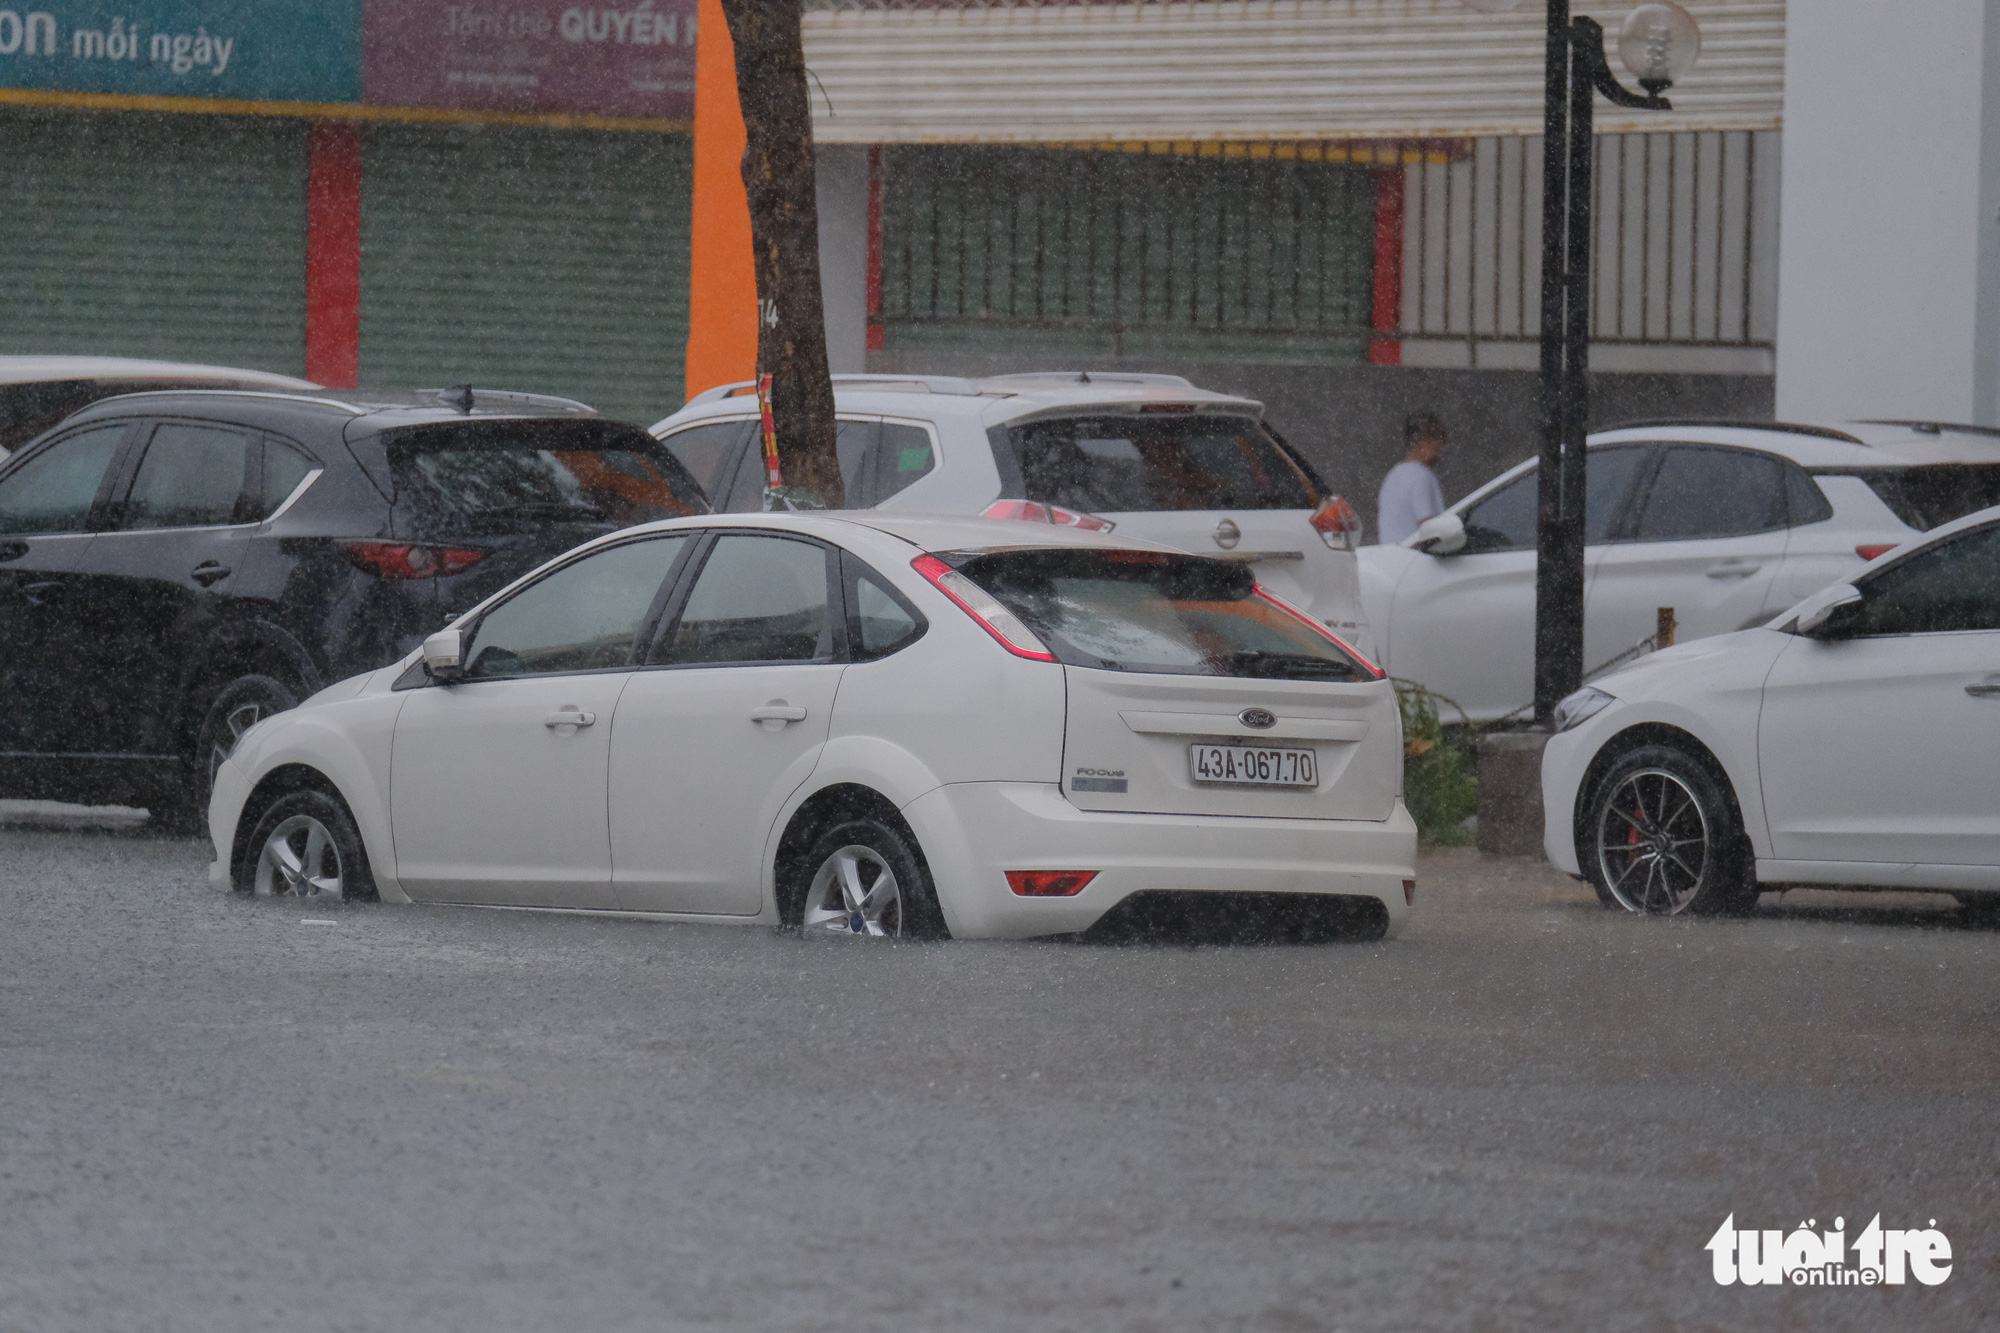 Cars are parked on sidewalks to avoid inundated rainwater on a street in Da Nang City, Vietnam, September 12, 2021. Photo: Tan Luc / Tuoi Tre